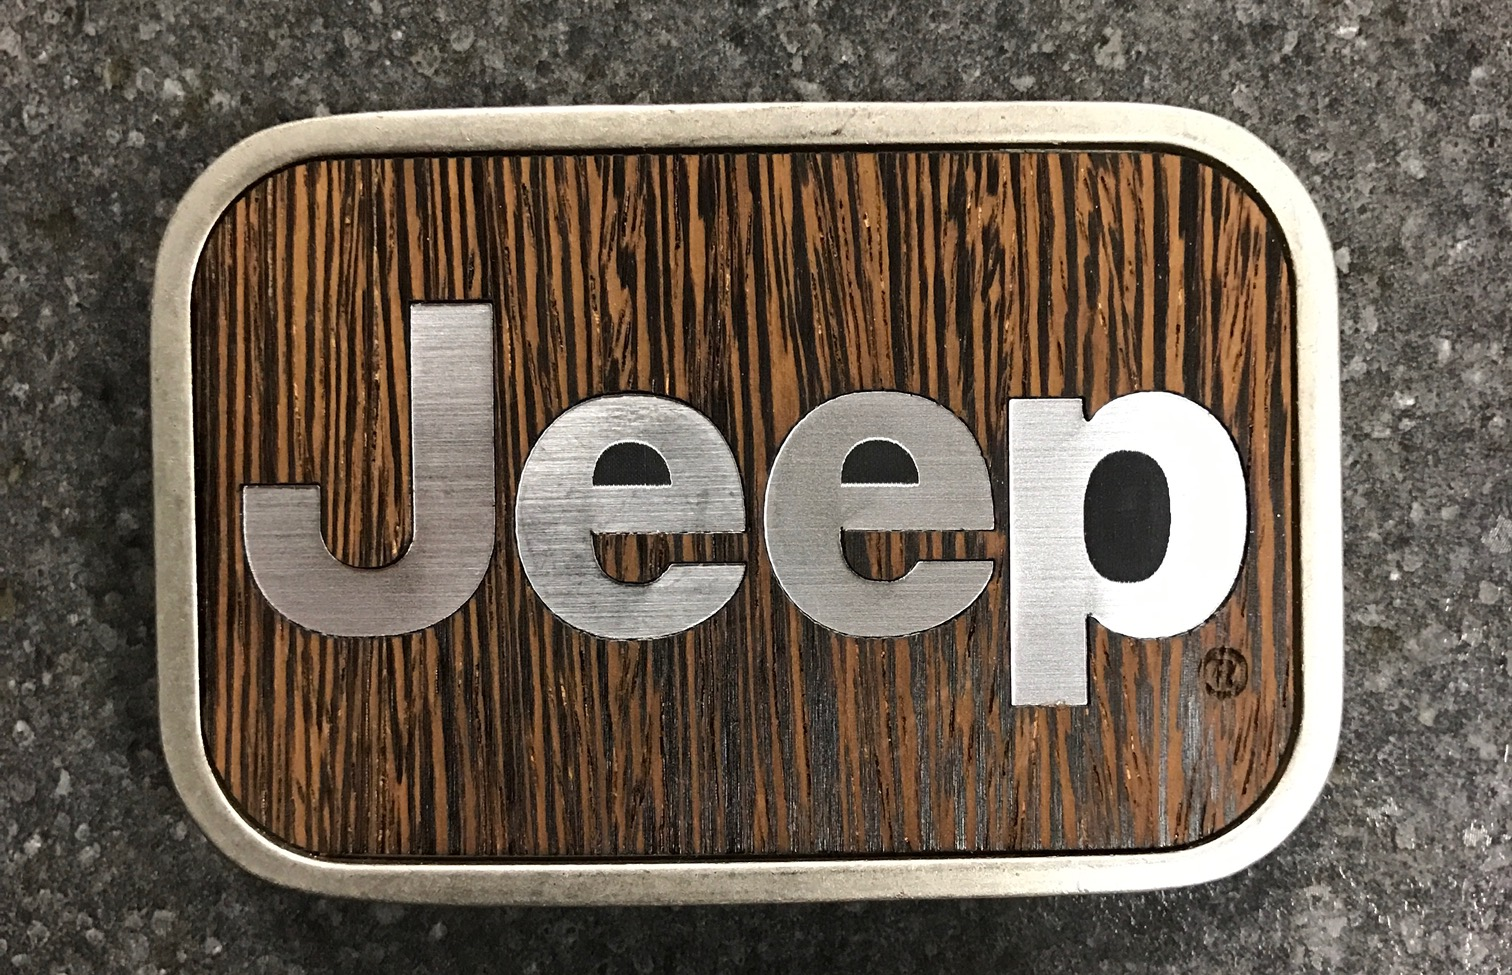 Jeep Wood Grain Belt Buckle